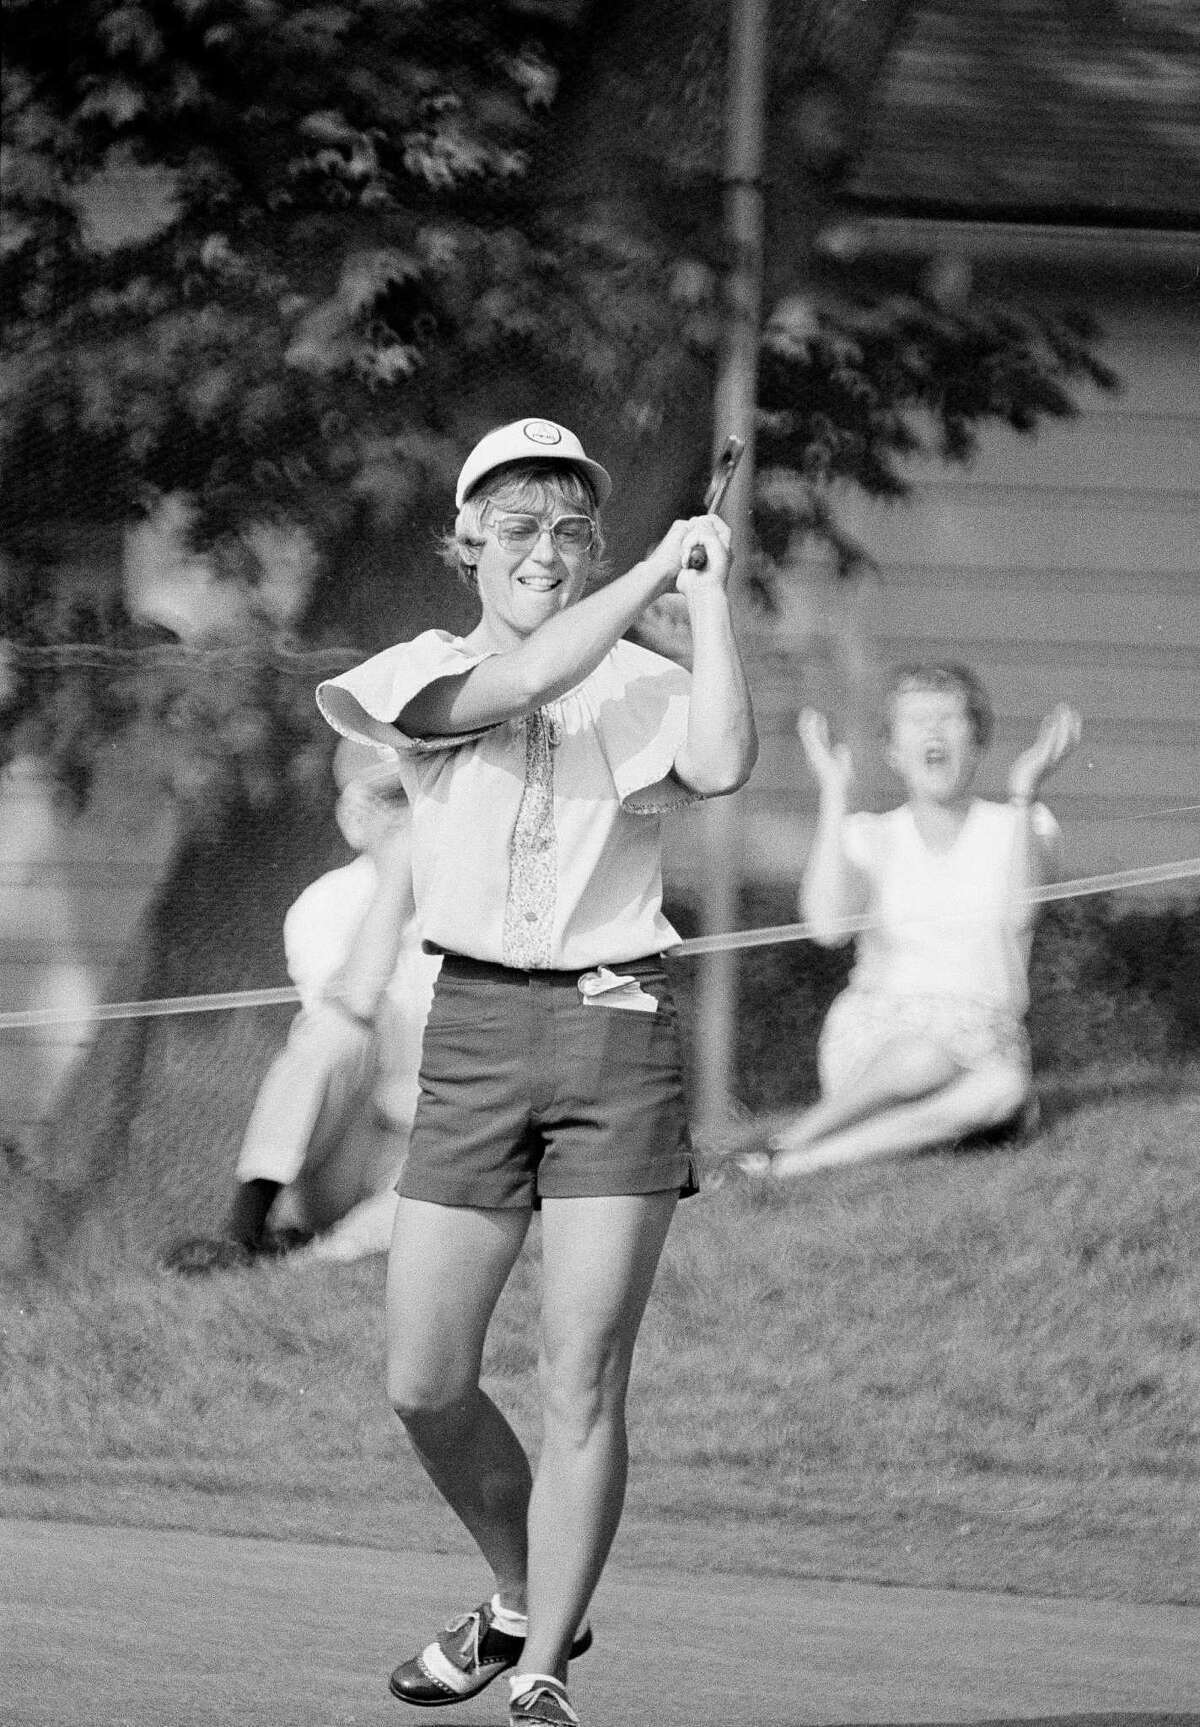 Jerilyn Britz of Luverne, Minn., urges her putt on the ninth green at Brooklawn Country Club in Fairfield, Conn., July 13, 1979, during the second round of the U.S. Women's Open golf tourney. The putt dropped for a birdie three to give her lead in the tourney. Britz has won the open three times. (AP Photo/Bob Child)